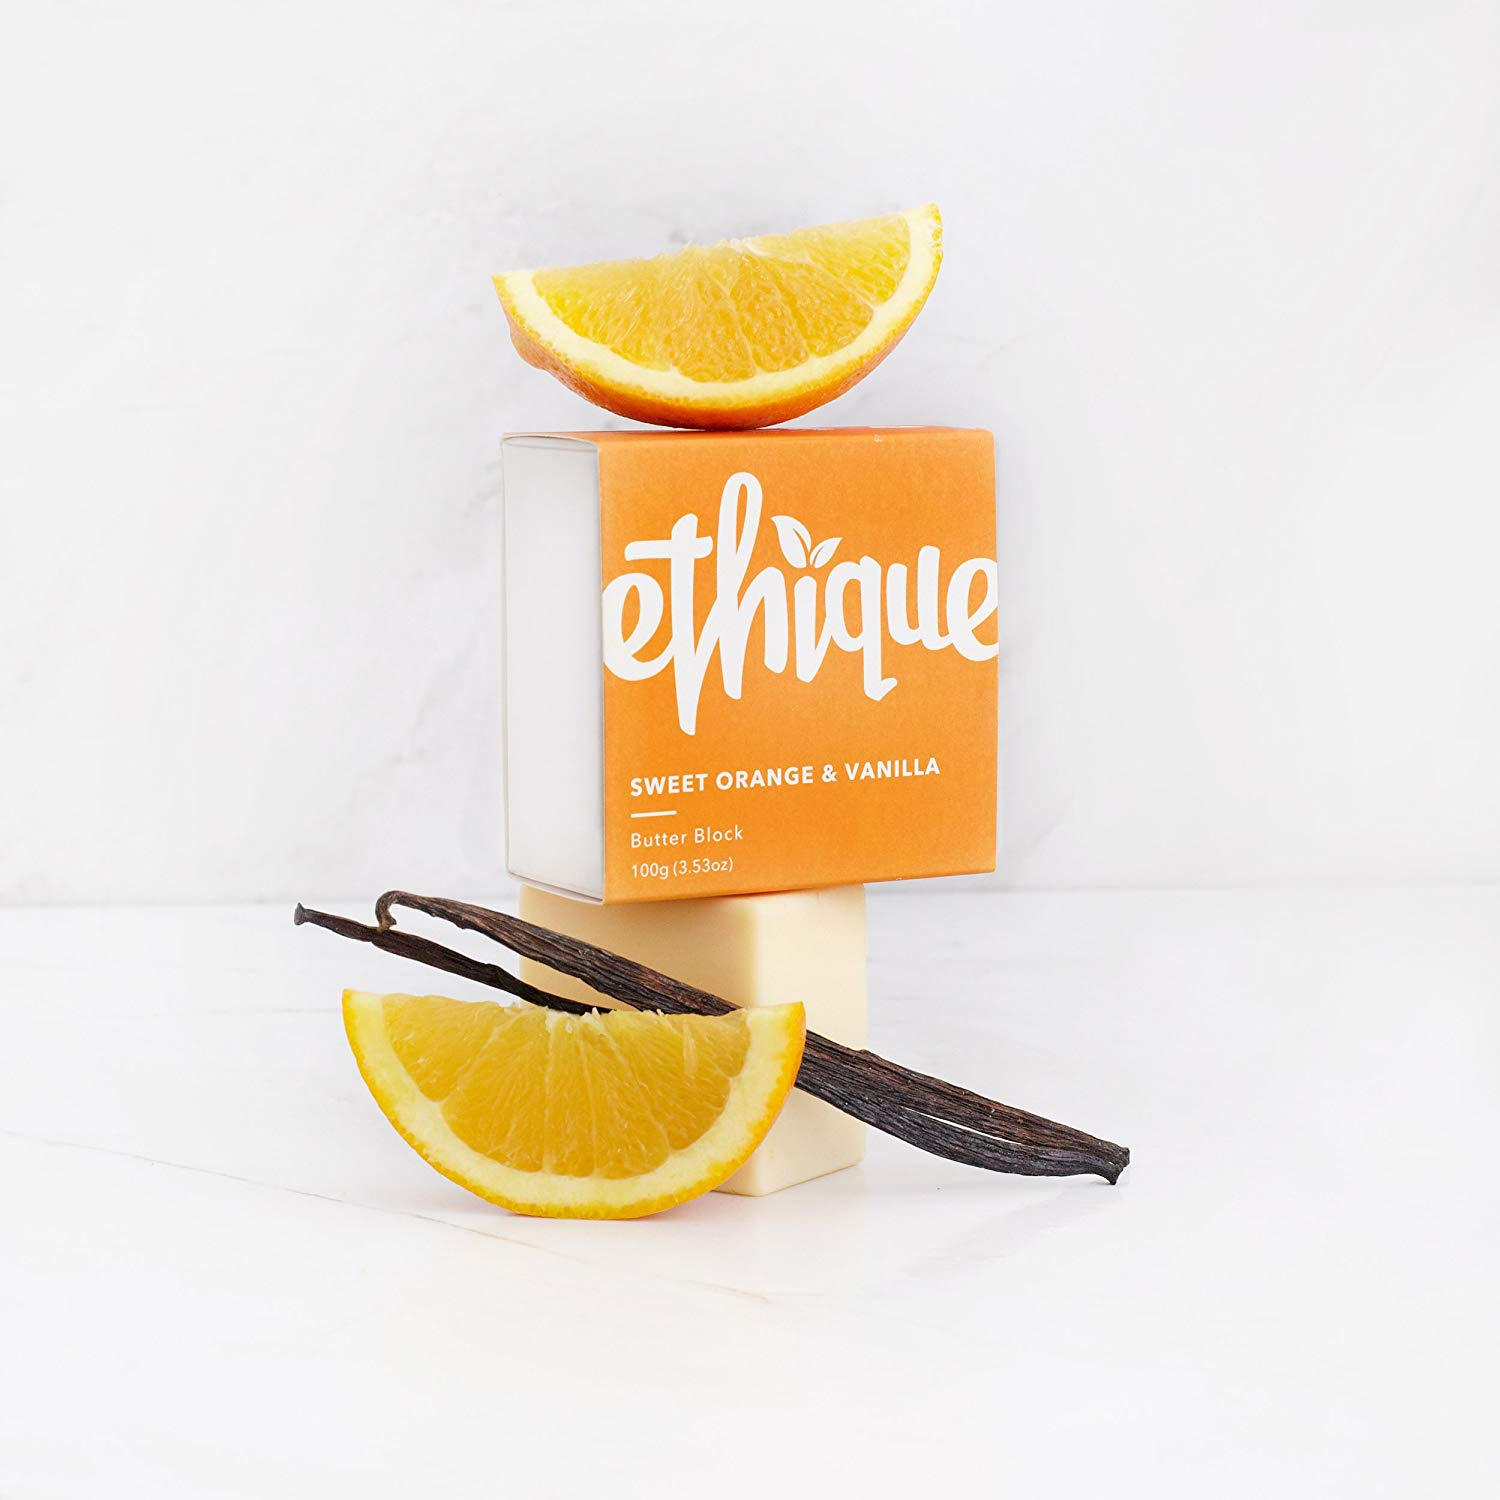 ETHIQUE Butter Block Orange & Vanilla 100g